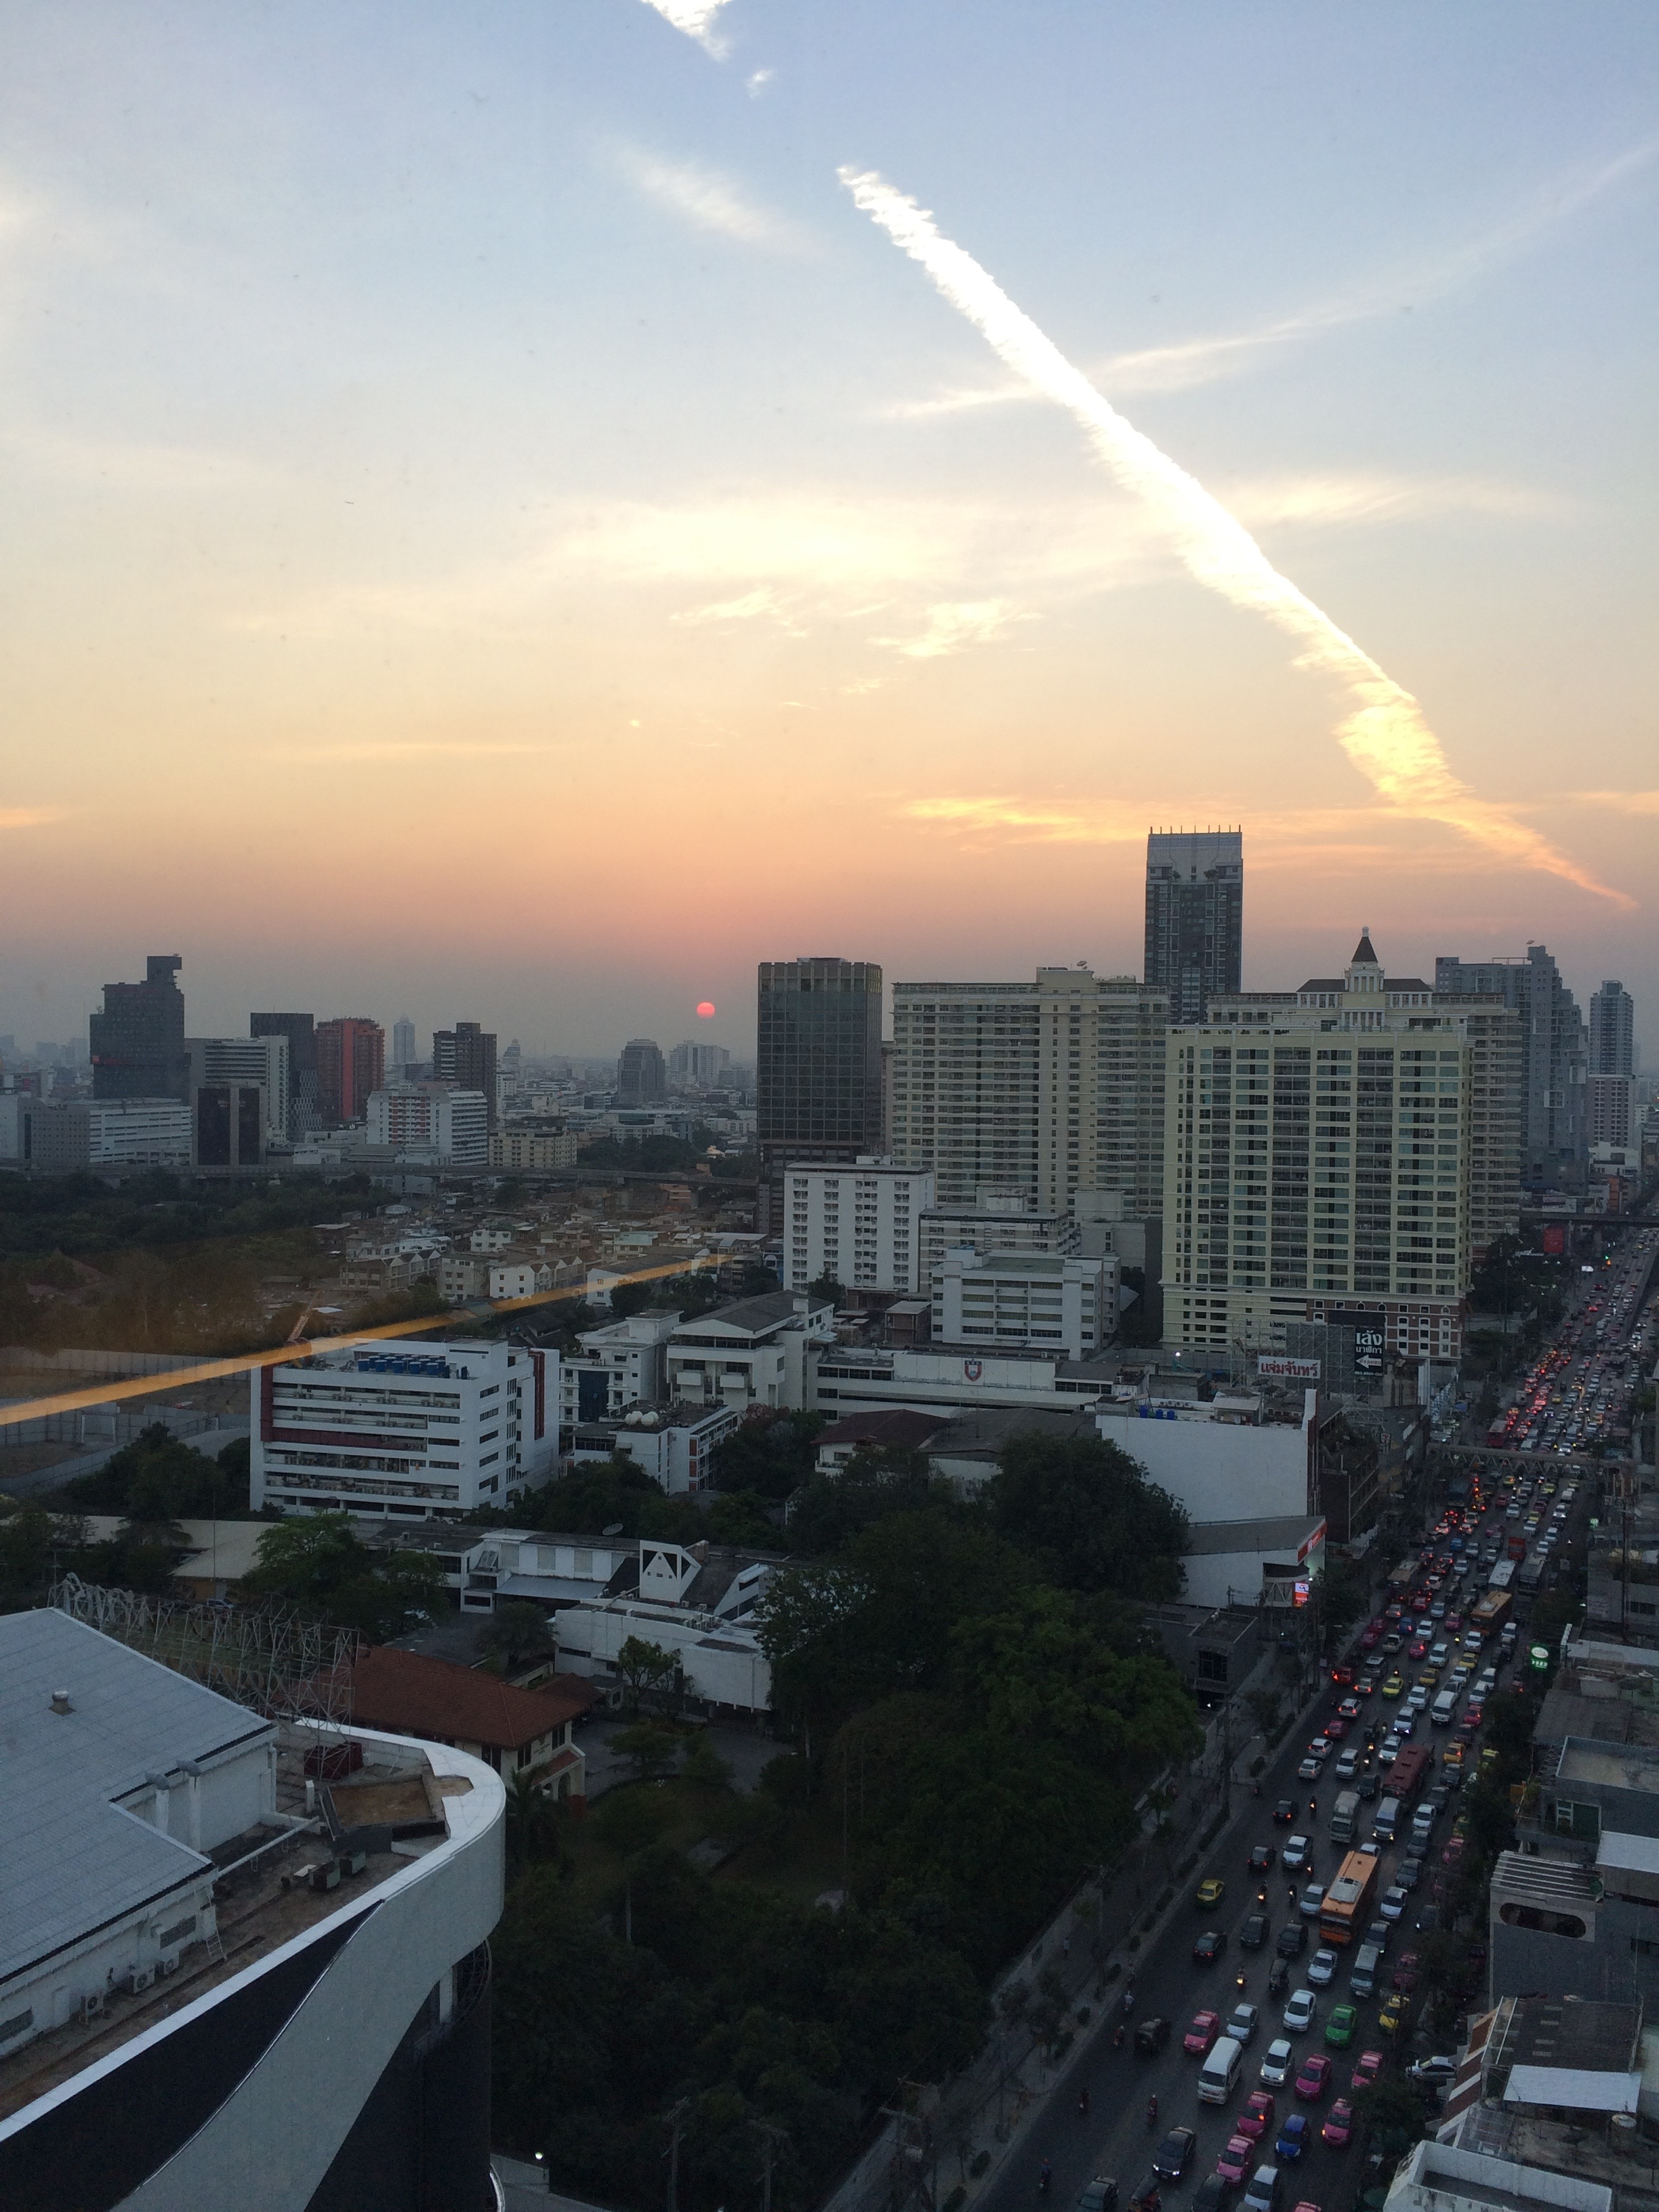 Traffic at sunset in Bangkok